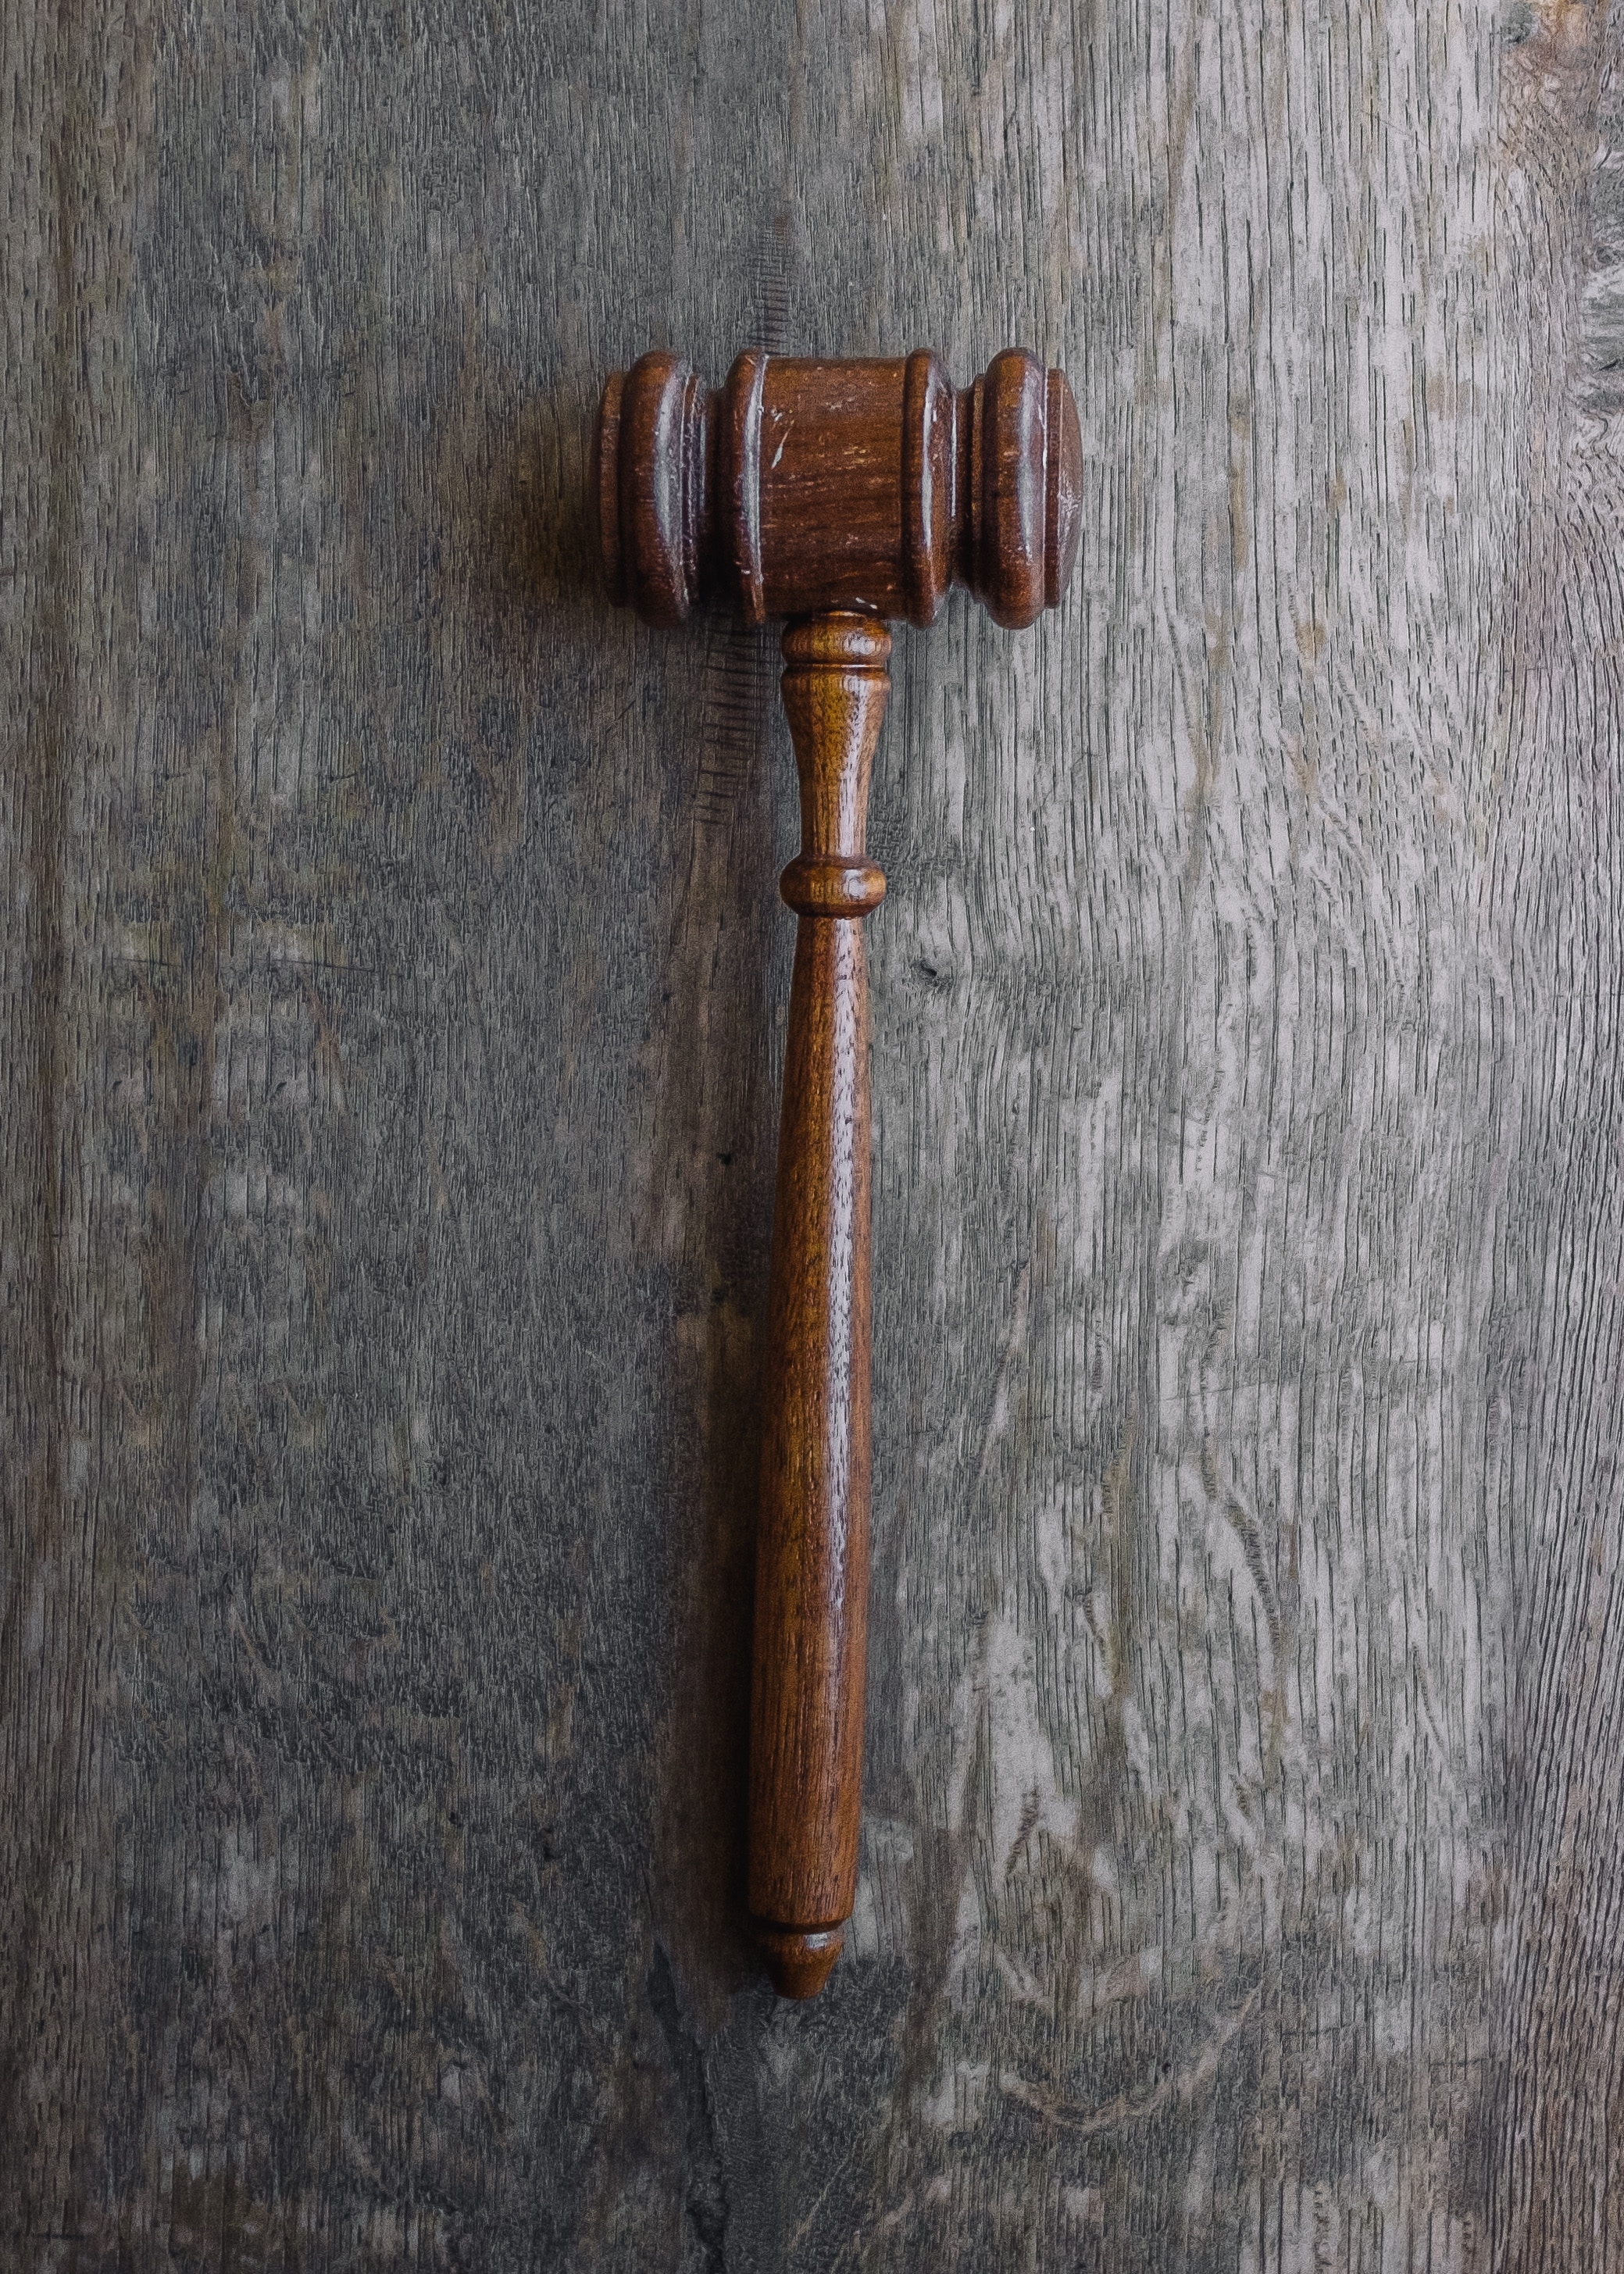 using-stock-photos-in-ads-gavel-dos-and-don'ts